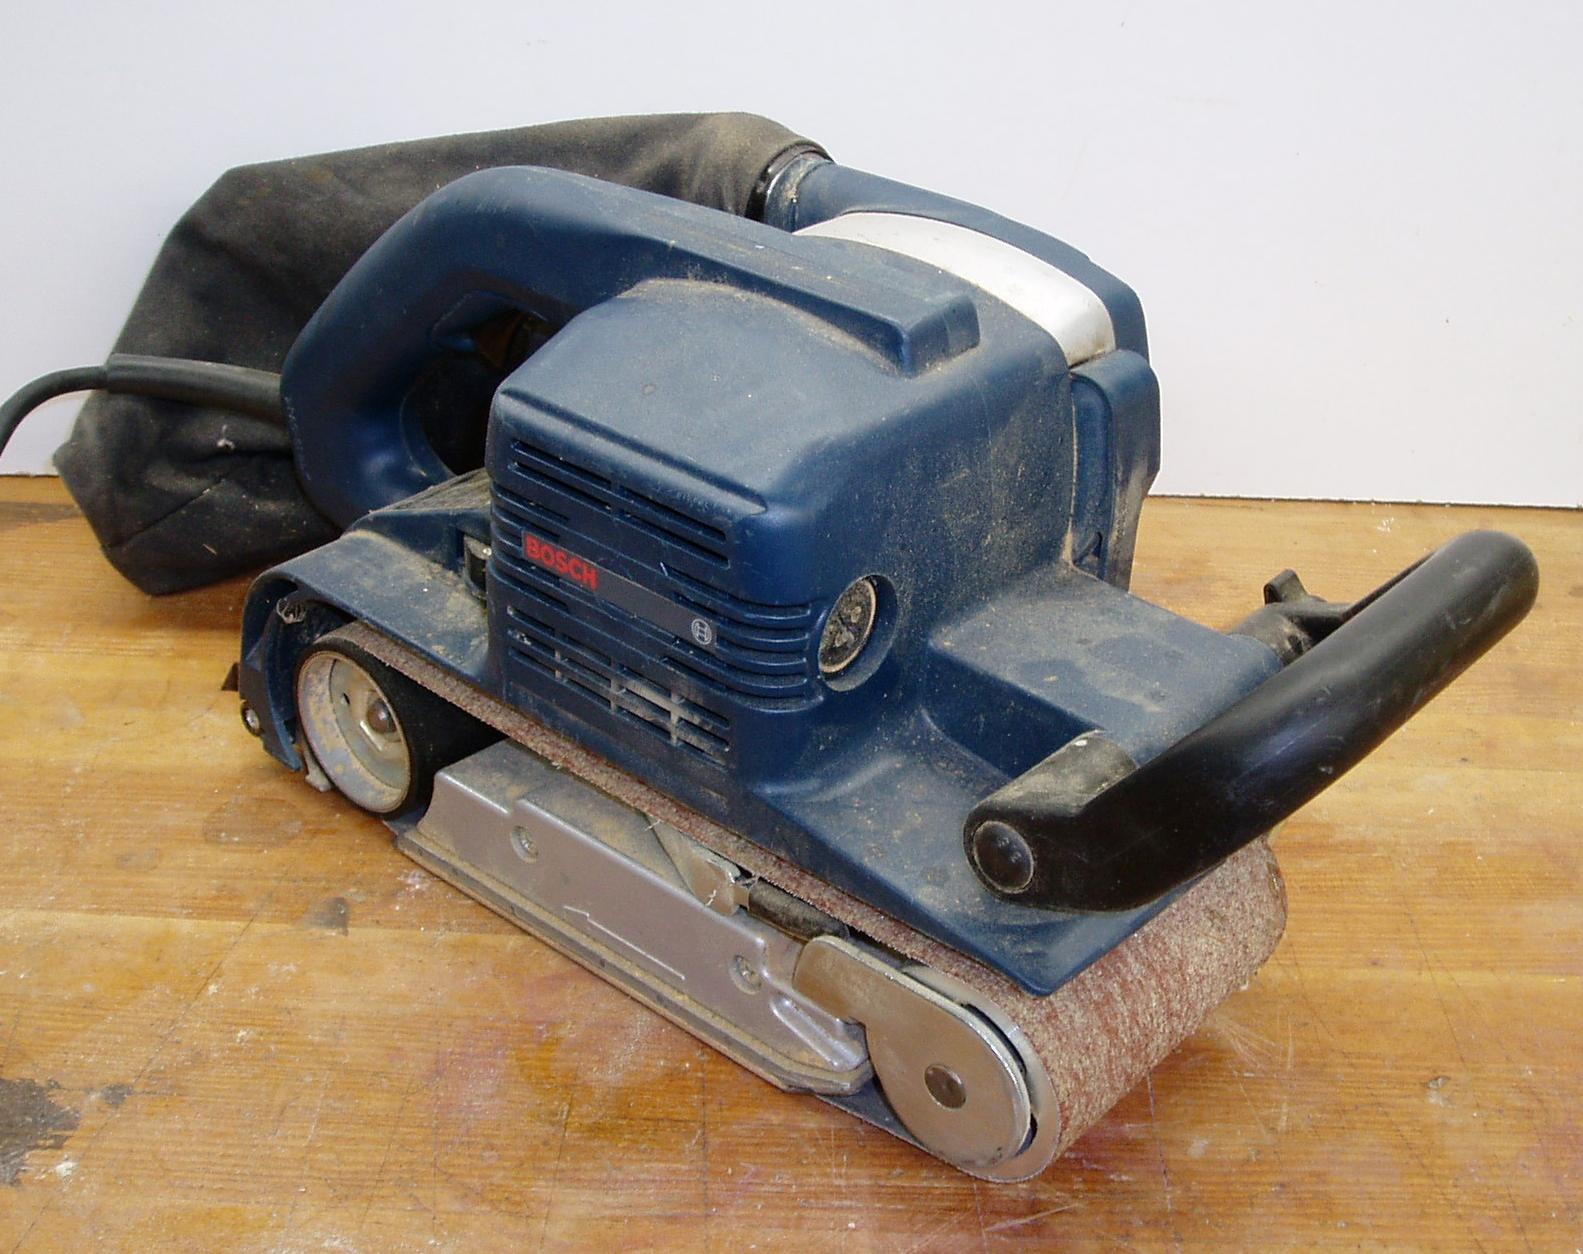 File:Belt sander bosch.jpg - Wikimedia Commons